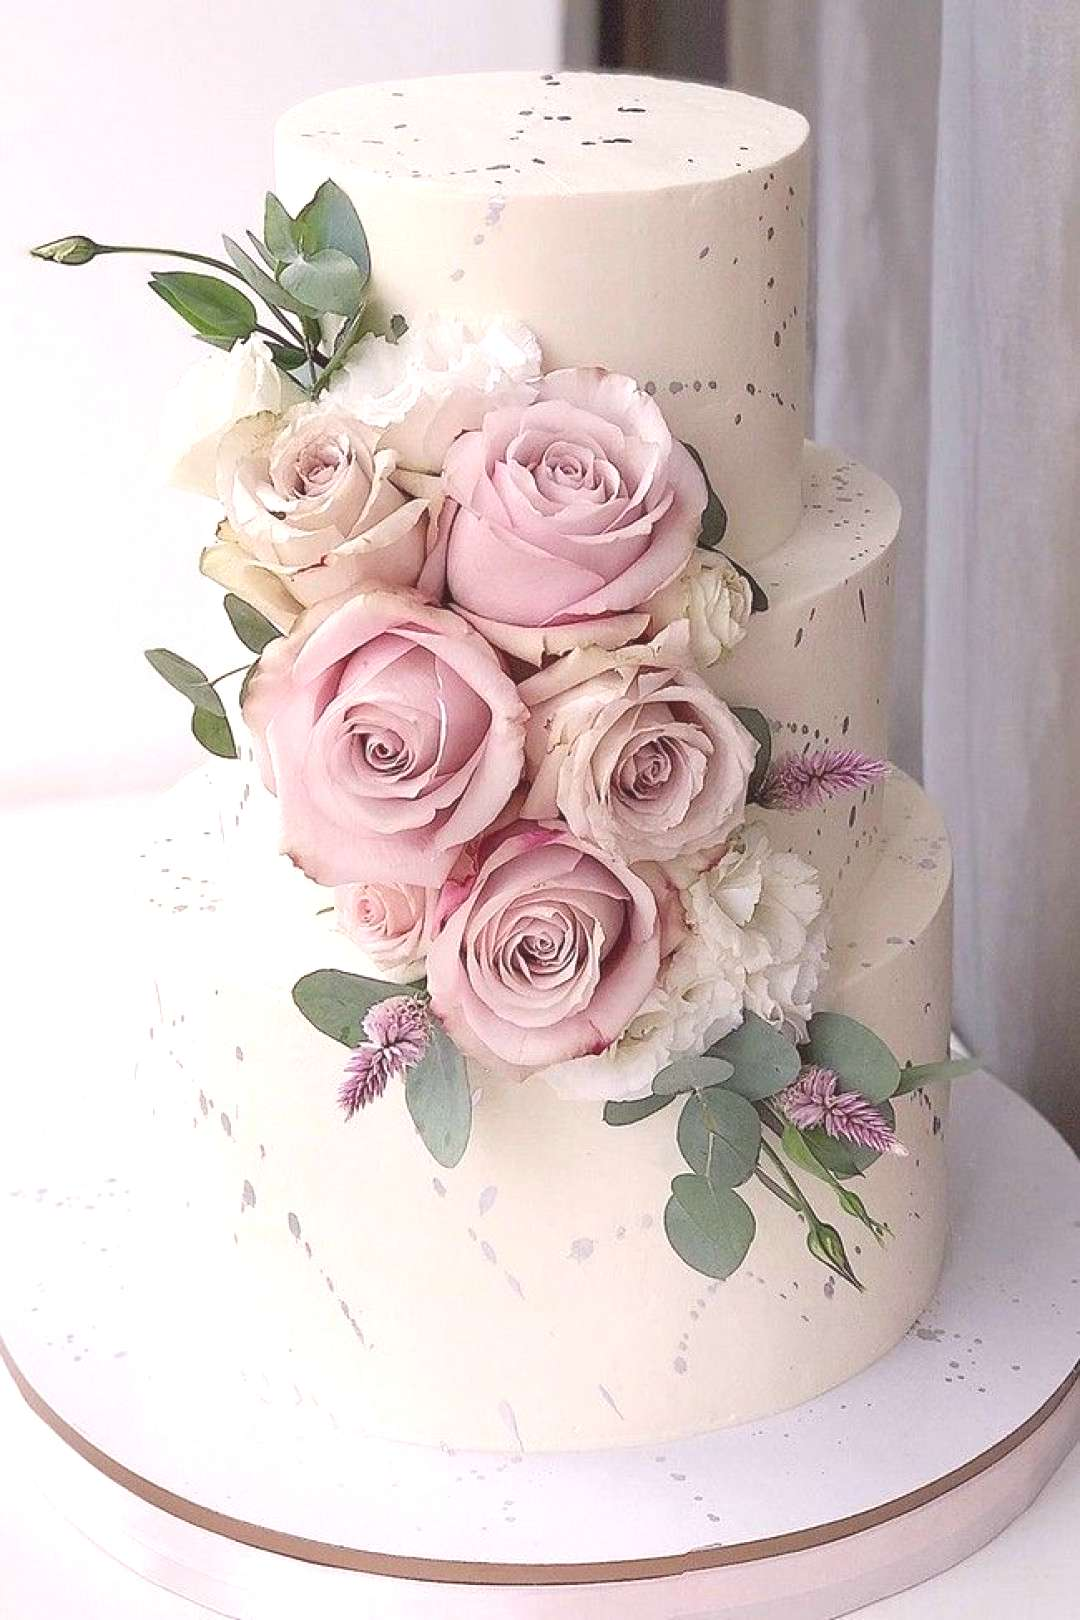 The 20 Most Beautiful Wedding Cakes   My Deer Flowers - Cake - Real Flowers amp Fruits#beautiful